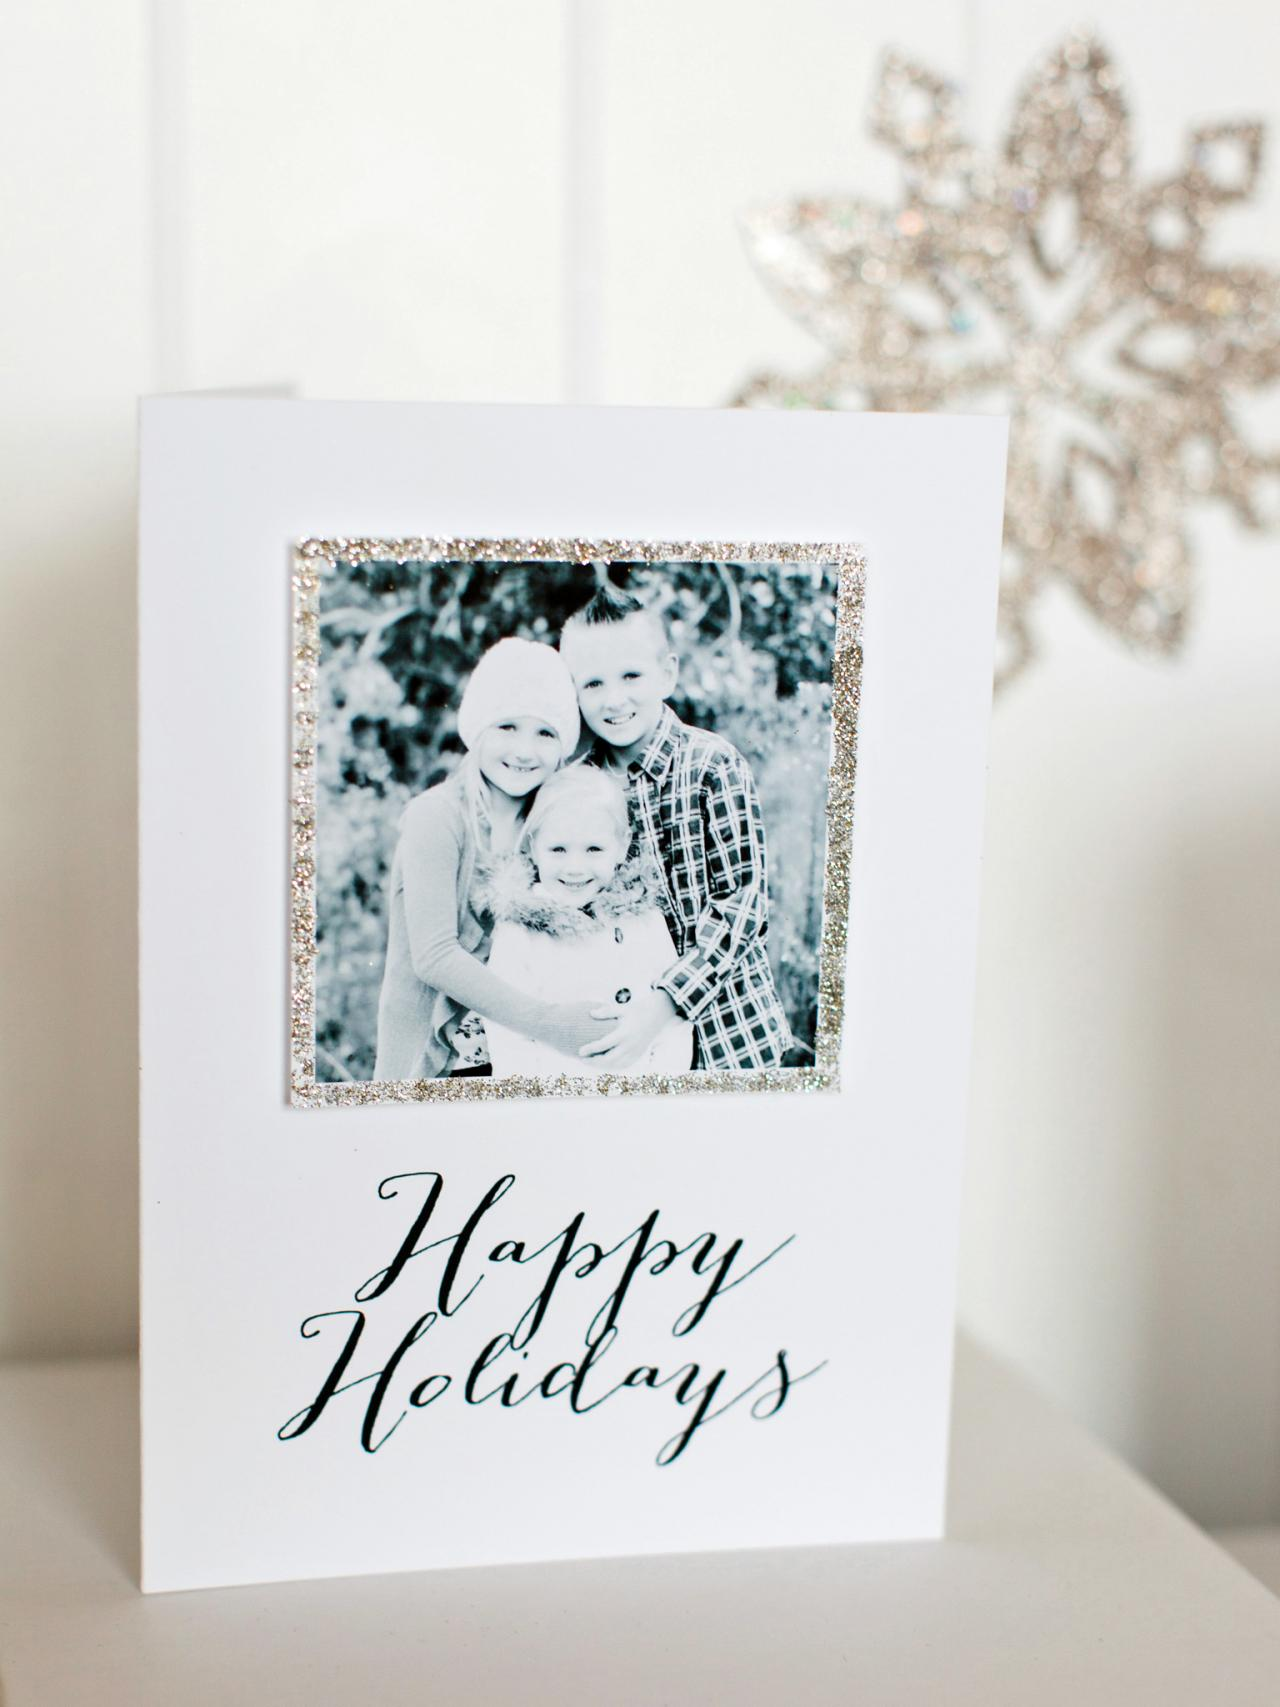 Free Christmas Templates: Printable Gift Tags, Cards, Crafts & More ...